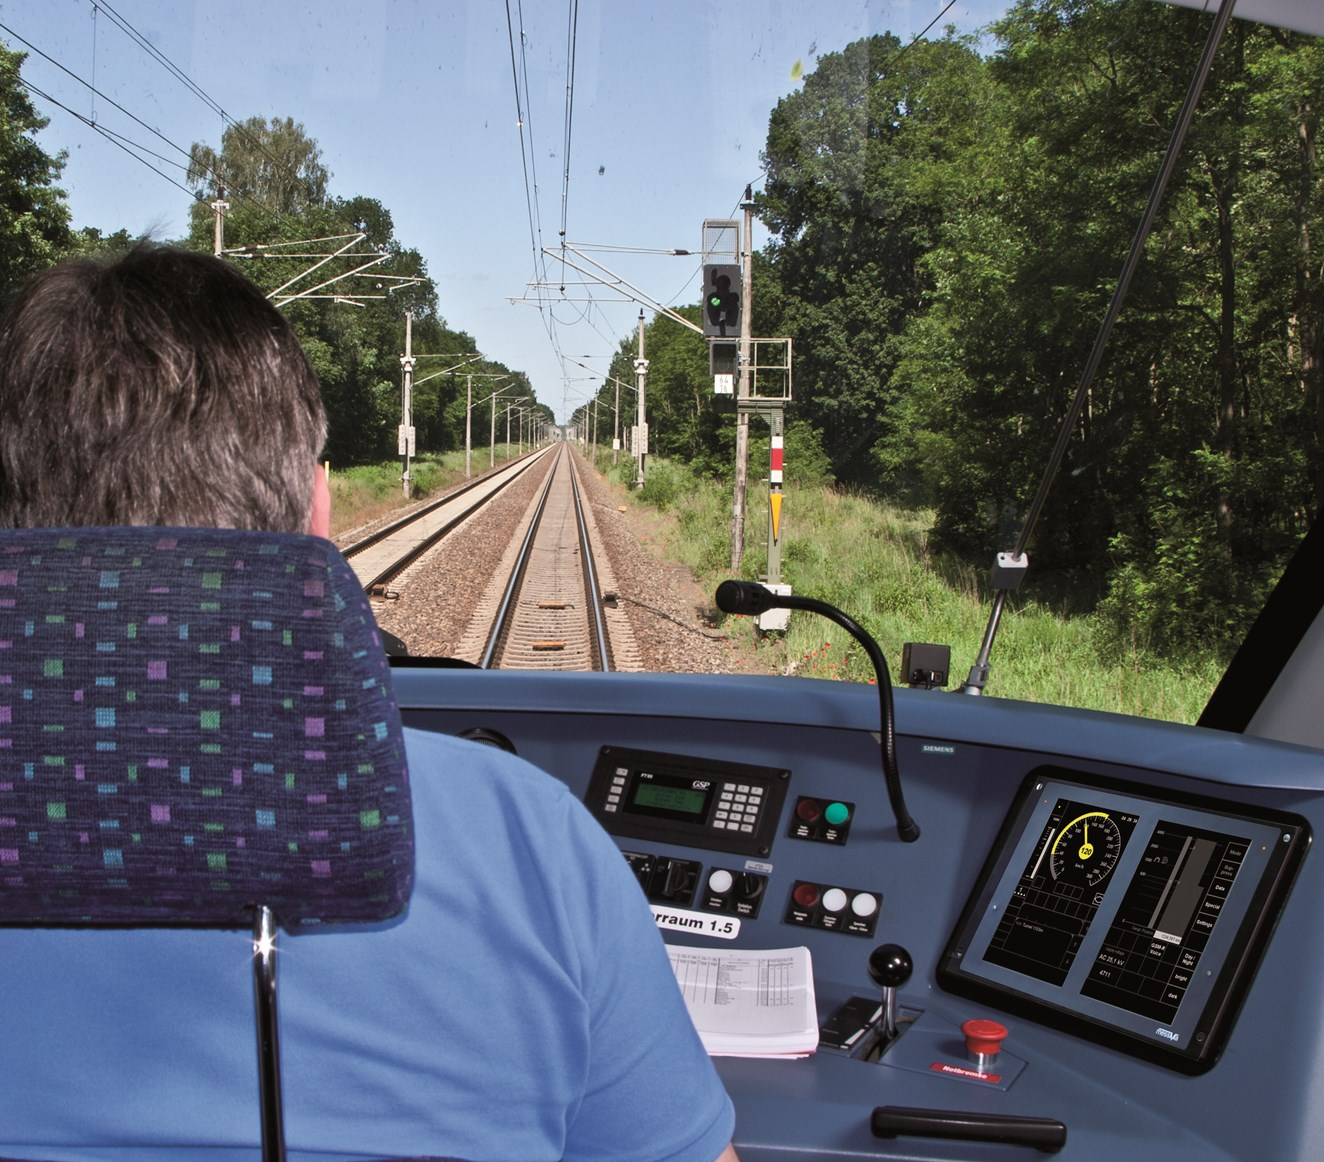 Siemens' Trainguard Level 2, Baseline 3 system will be installed on every freight loco